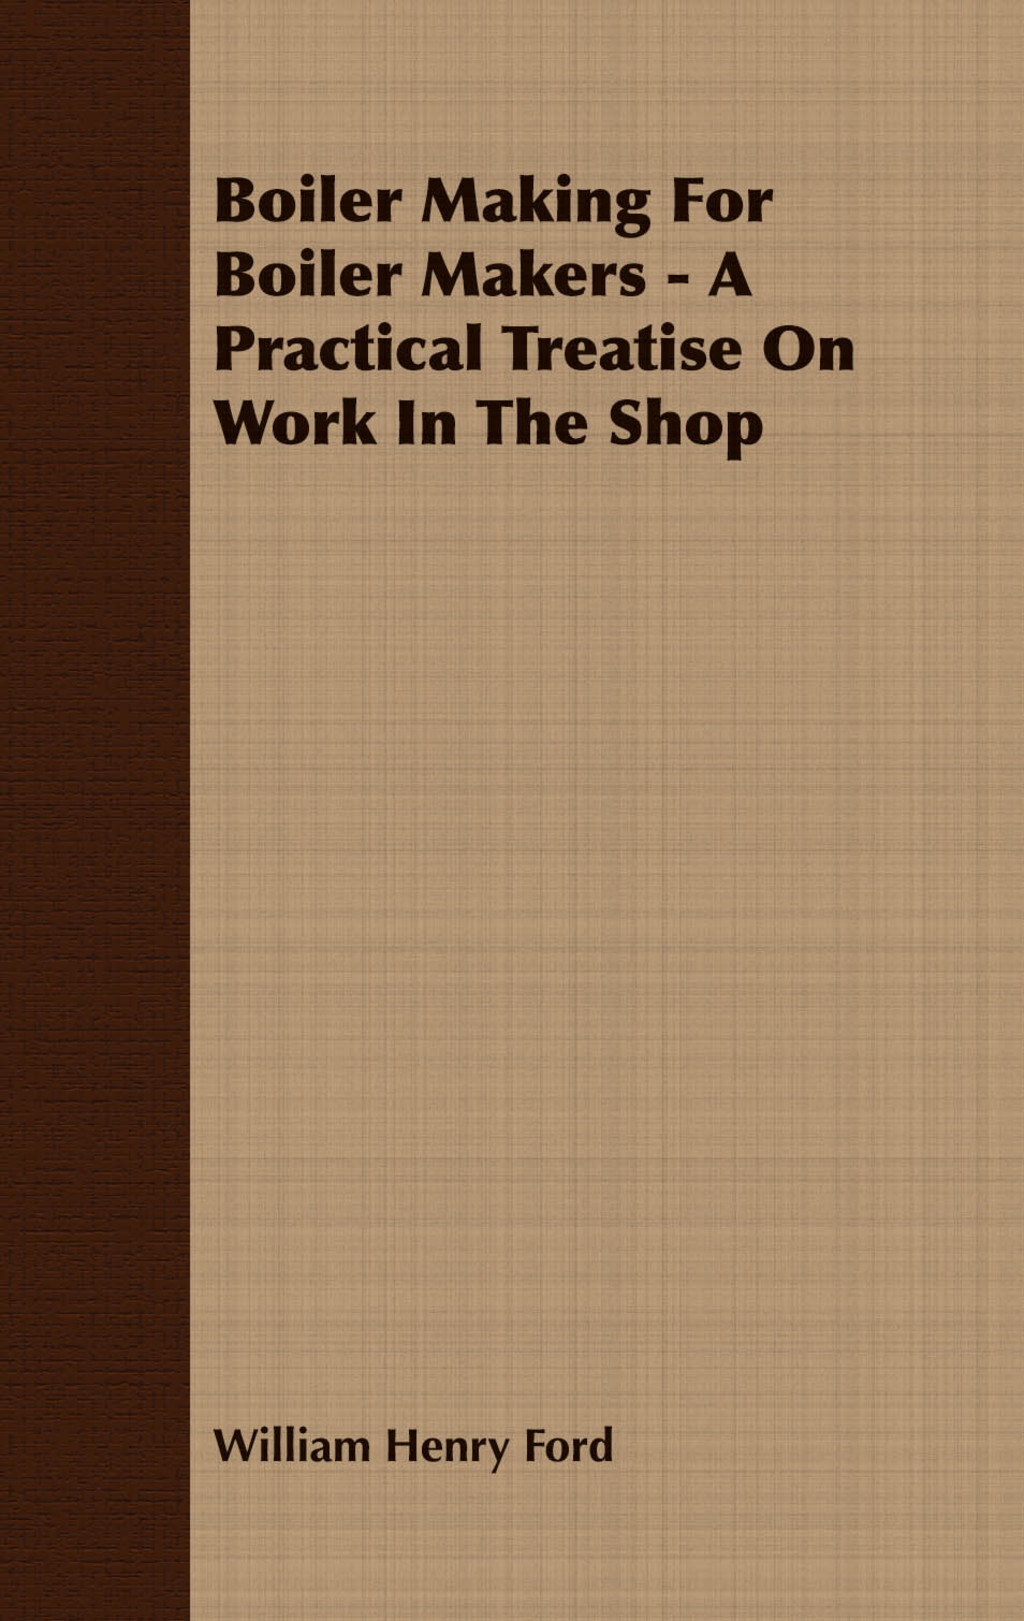 Boiler Making for Boiler Makers - A Practical Treatise on Work in the Shop (ebook) eBooks